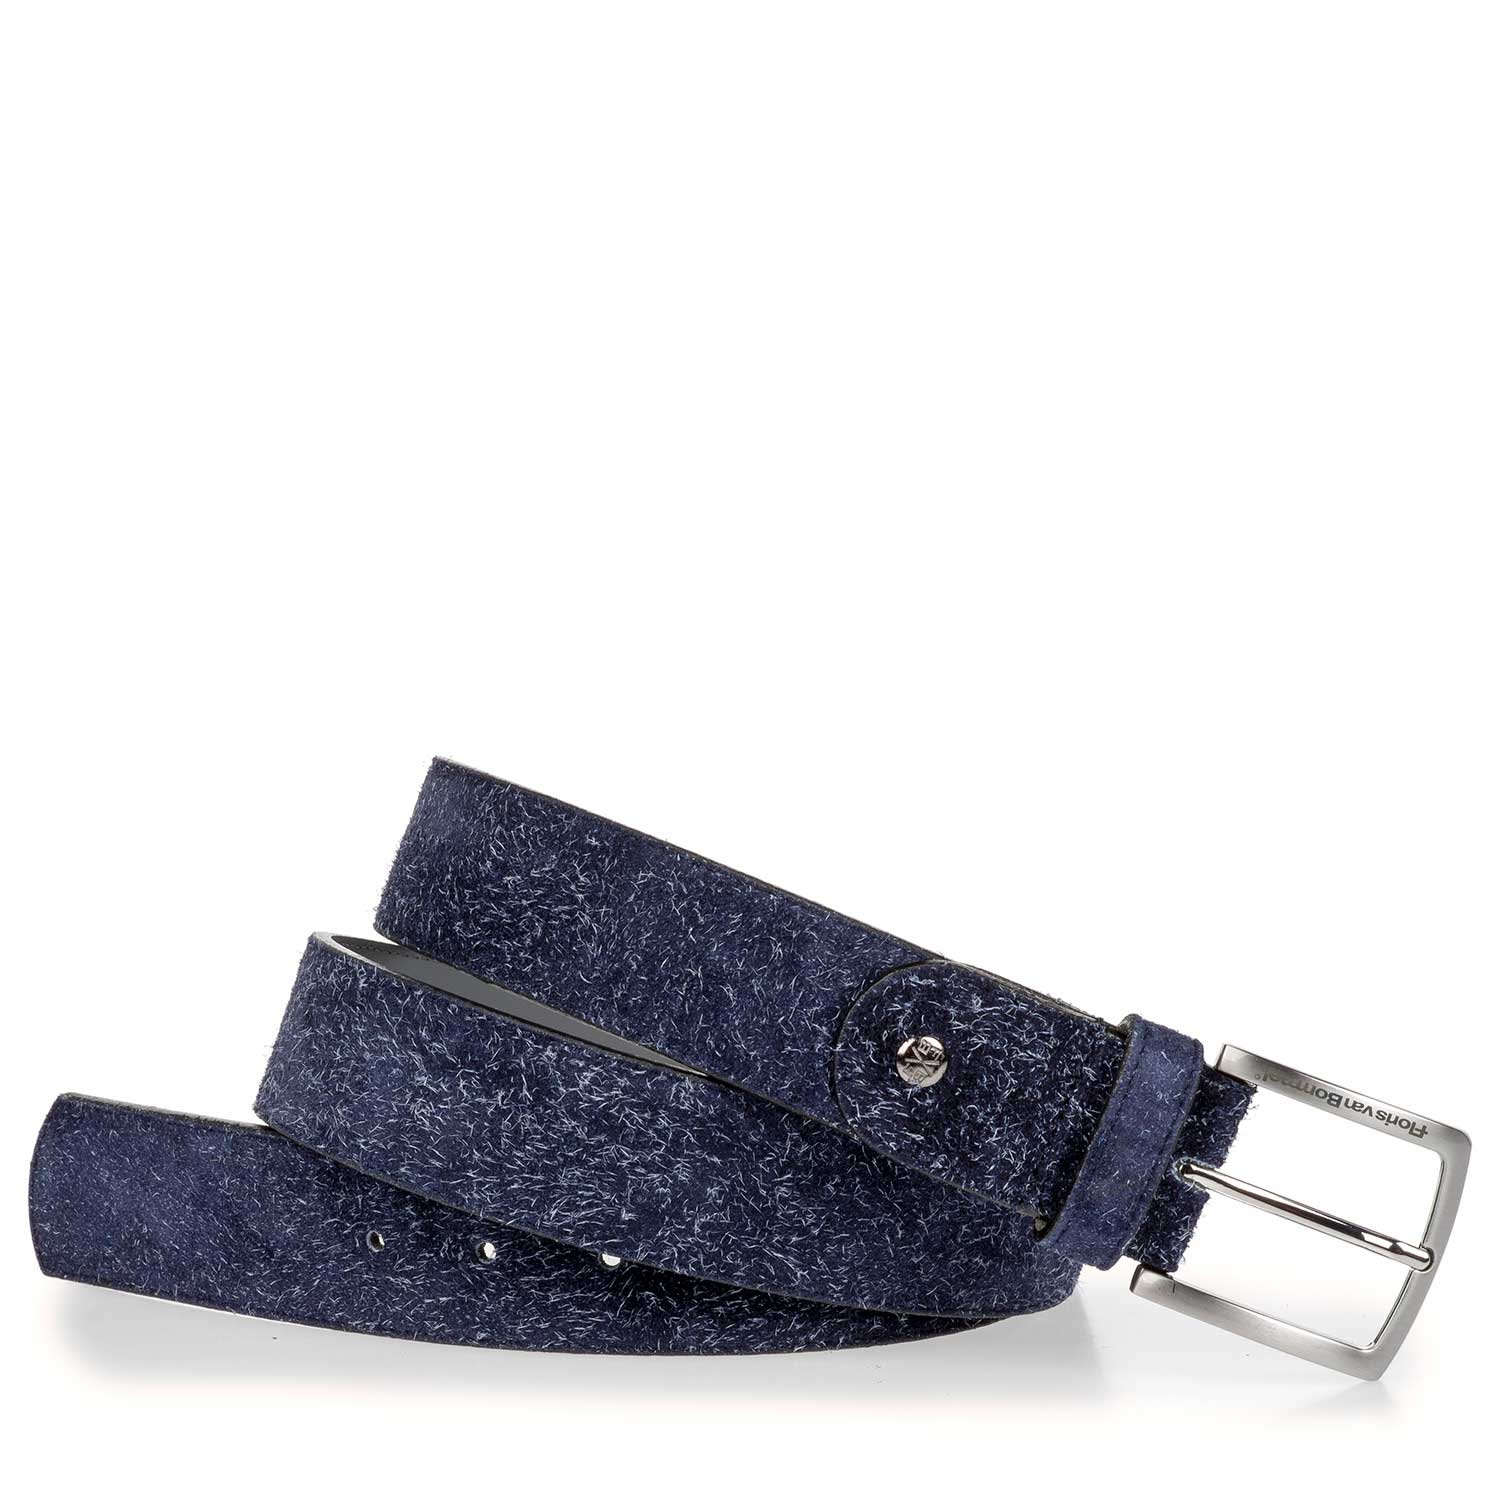 75191/01 - Belt made of blue rough-haired suede leather